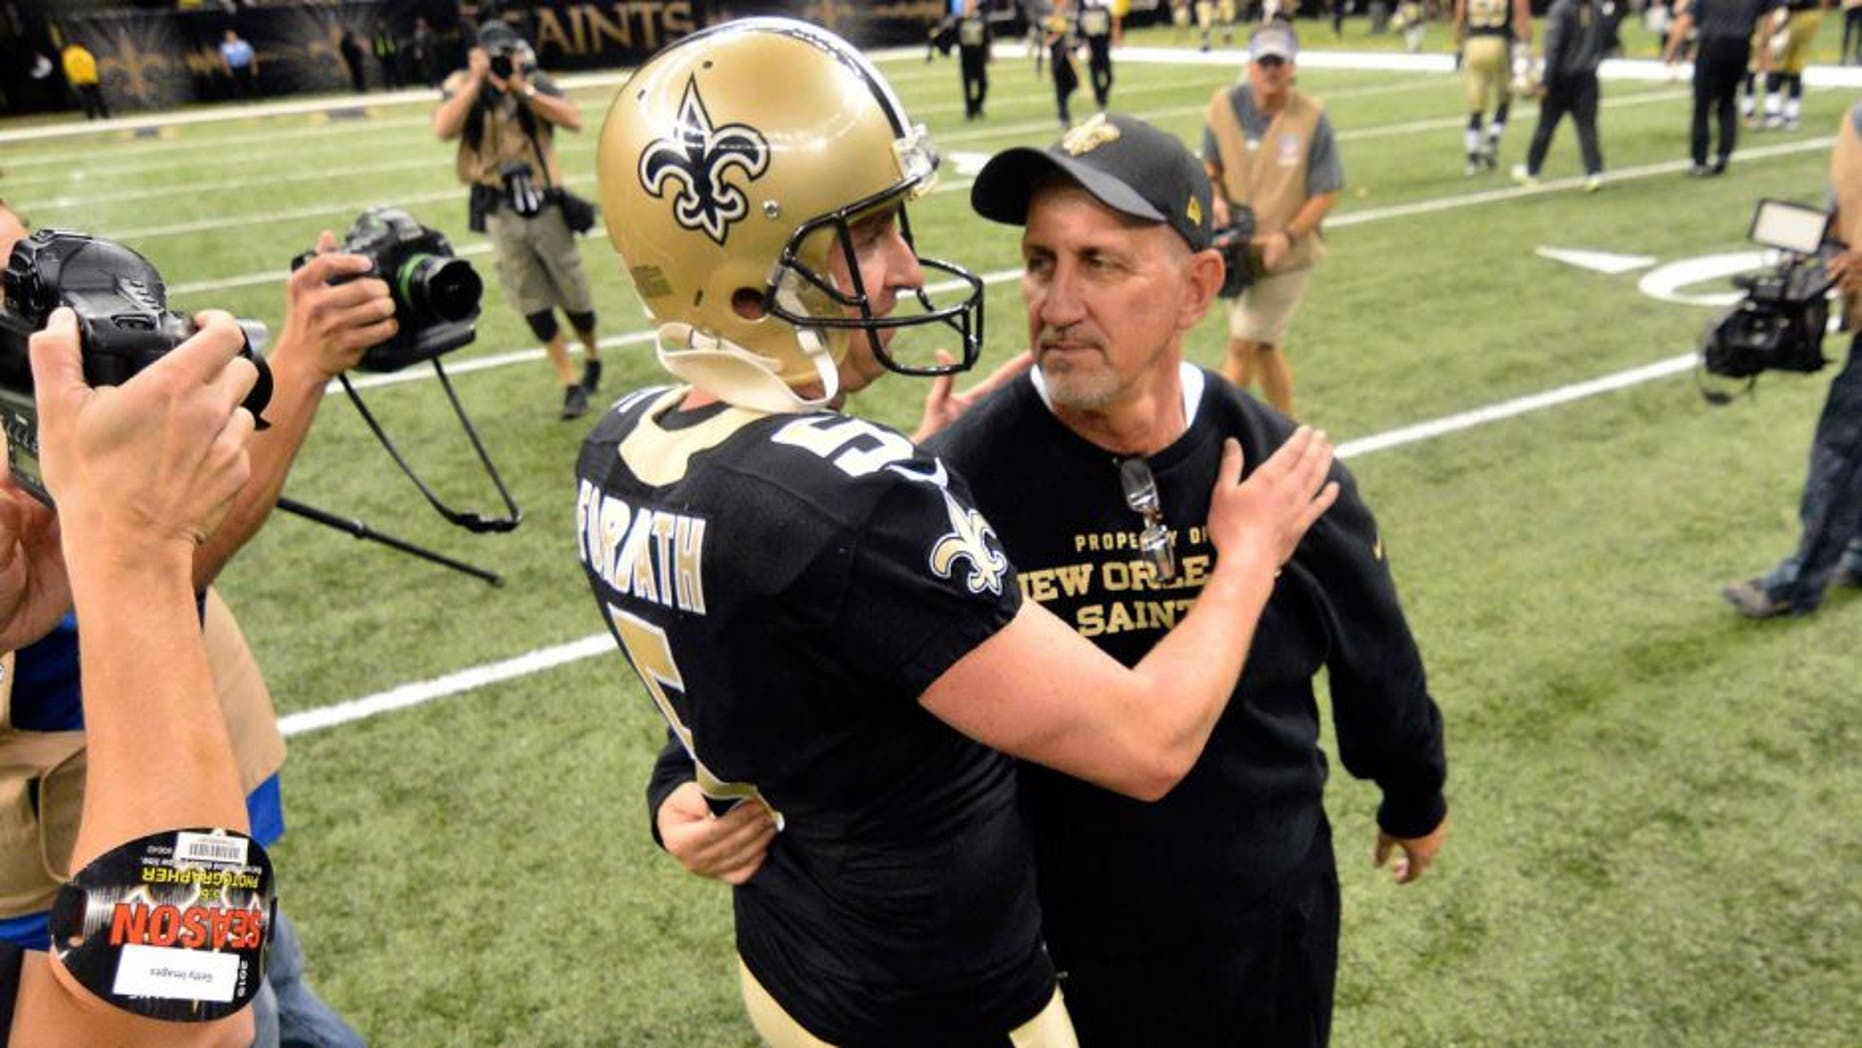 Nov 1, 2015; New Orleans, LA, USA;New Orleans Saints kicker Kai Forbath (5) and special teams coordinator Greg McMahon celebrate the winning field goal after the game against the New York Giants at the Mercedes-Benz Superdome. New Orleans won 52-49. Mandatory Credit: Matt Bush-USA TODAY Sports